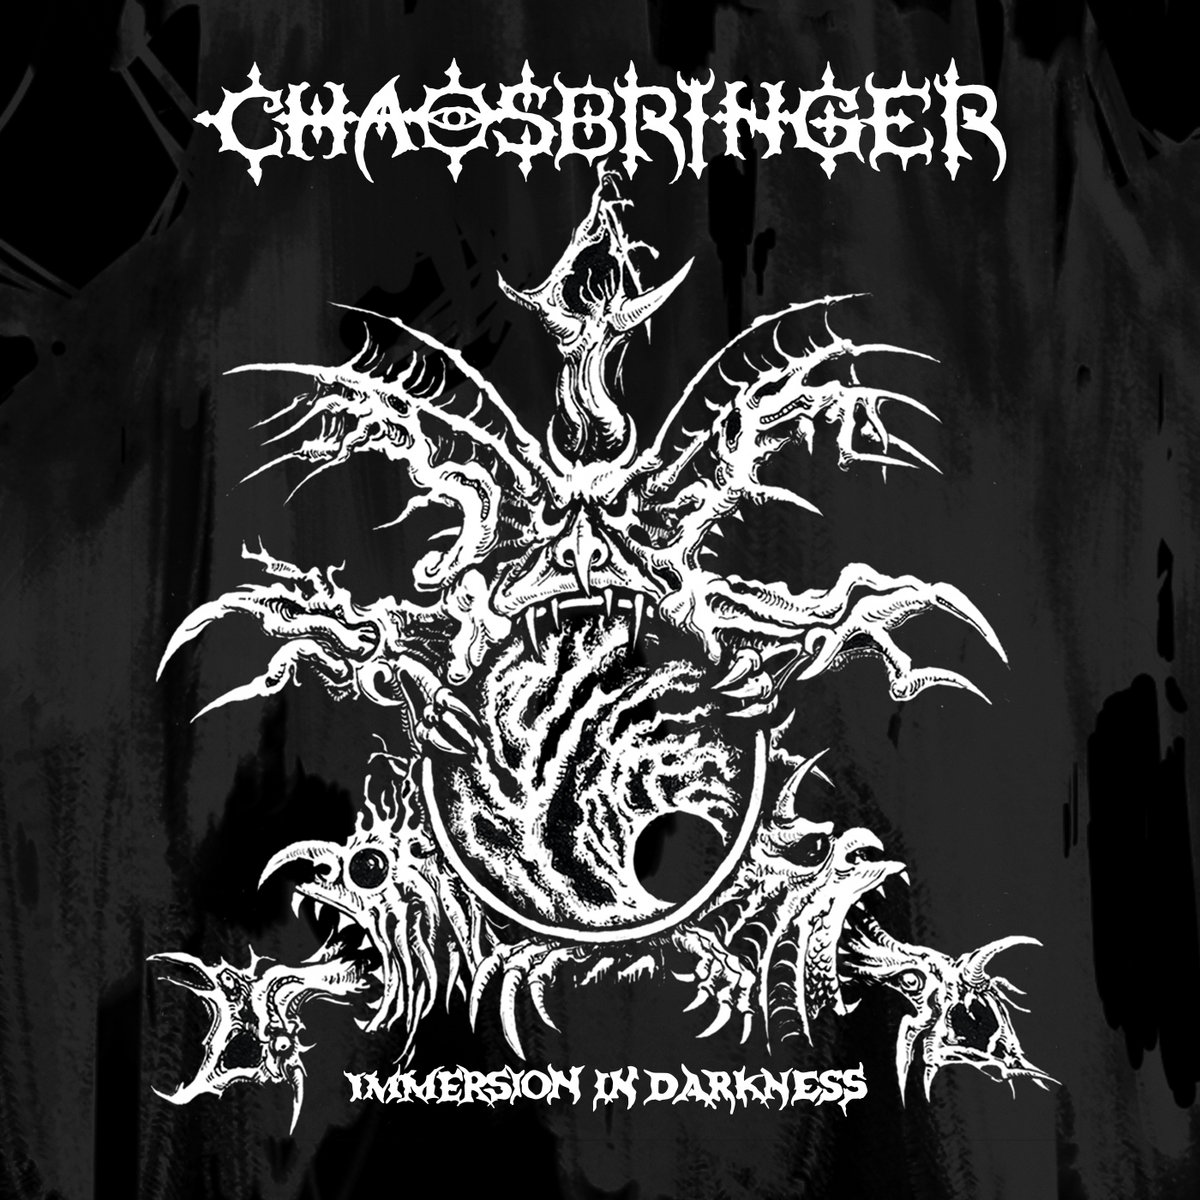 CHAOSBRINGER - IMMERSION IN DARKNESS (OLD SCHOOL DM, 2016)